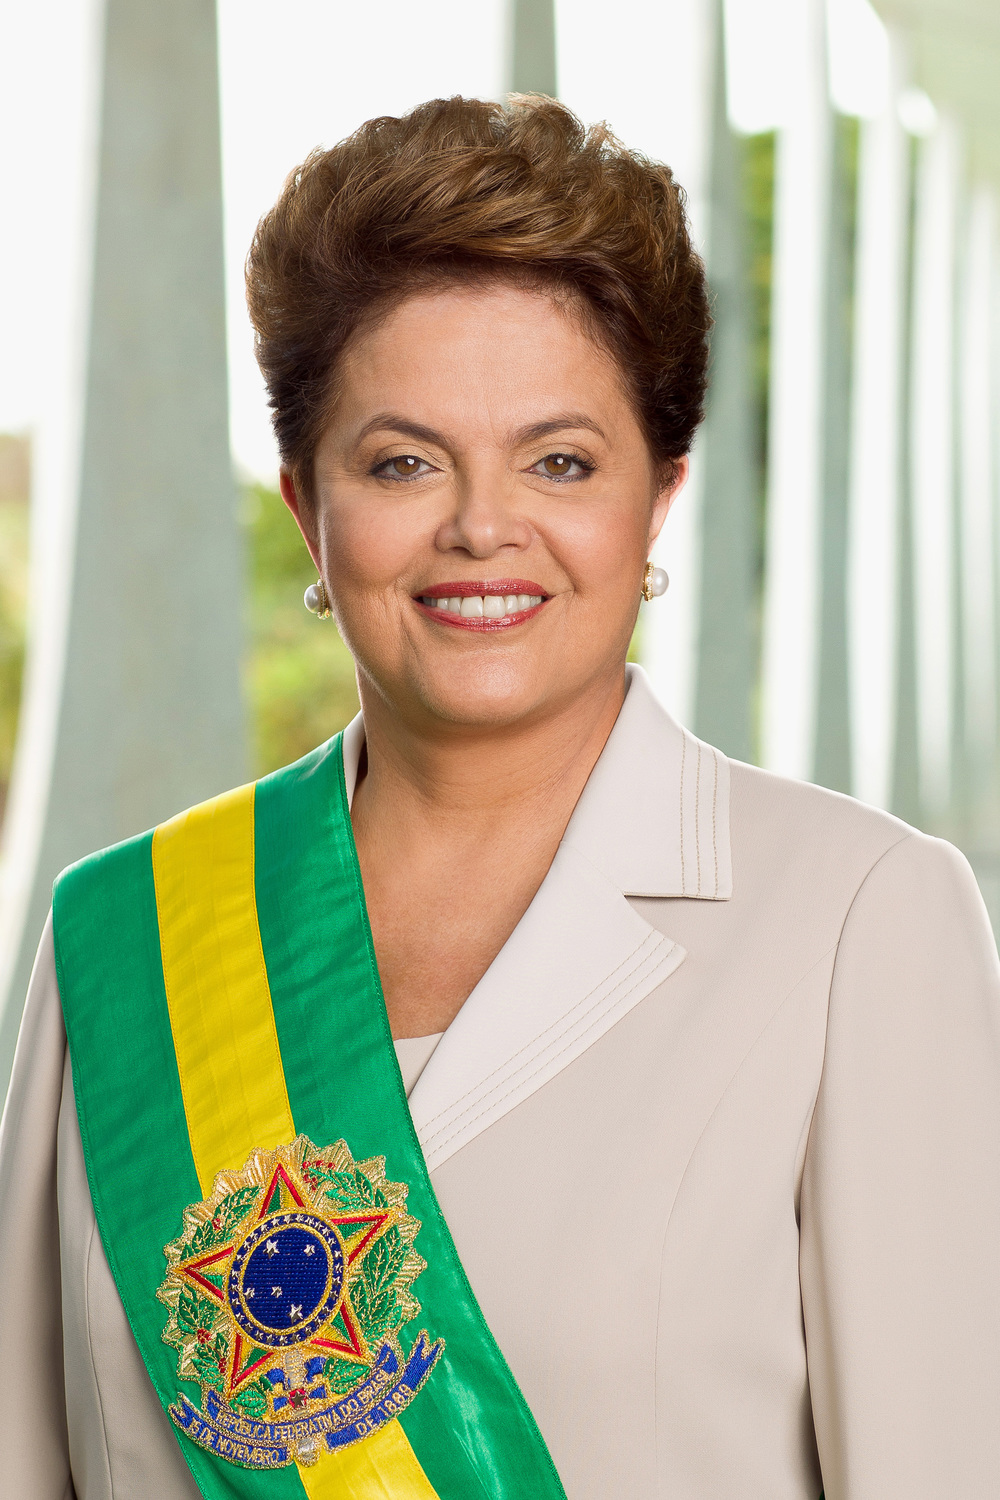 Suspended Brazilian President Dilma Rousseff. Credit: Agência Brasil via Wikimedia Commons.